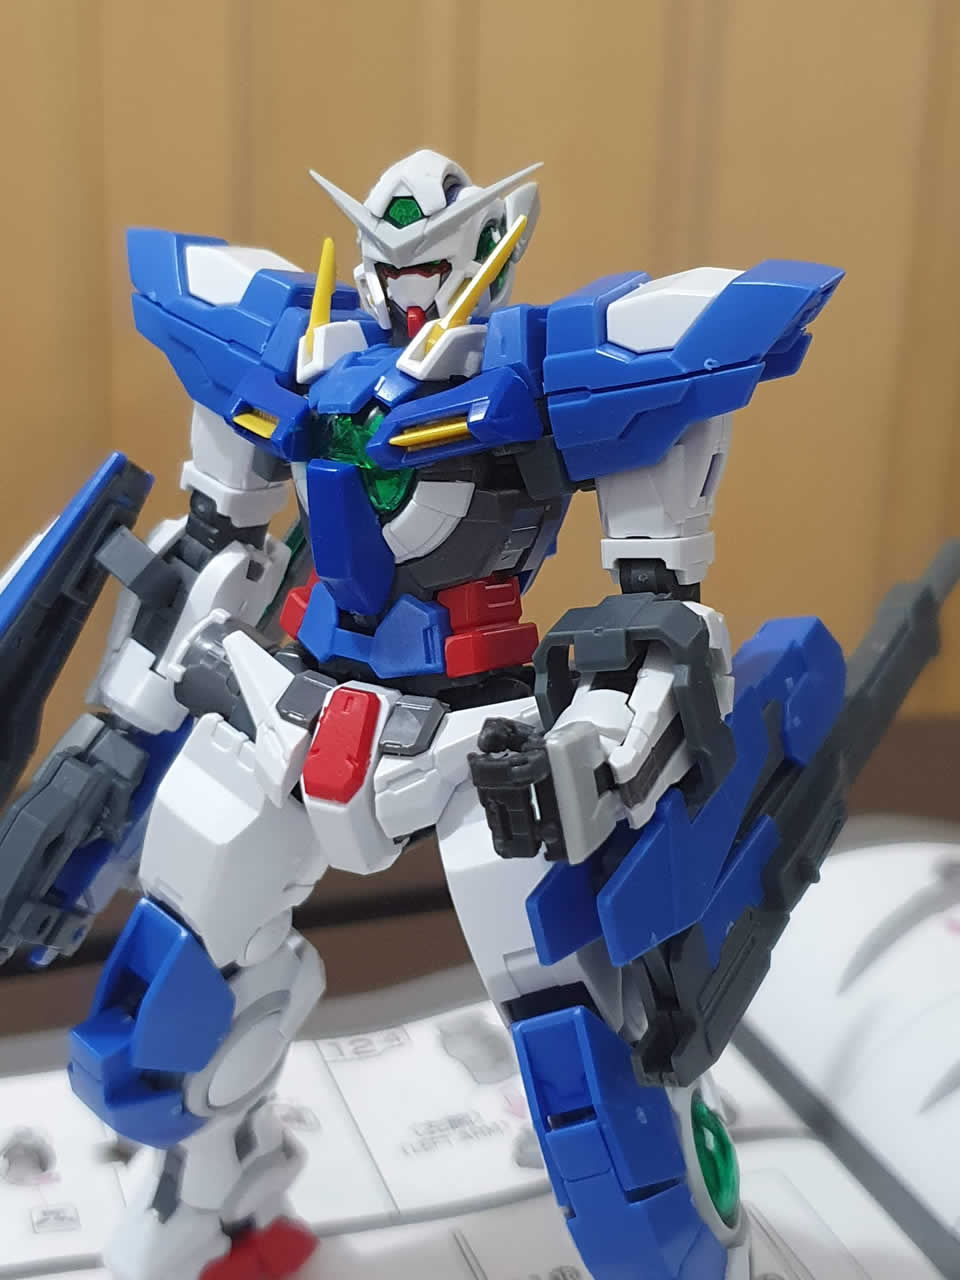 Exia Repair RG equipping the GN Rifle